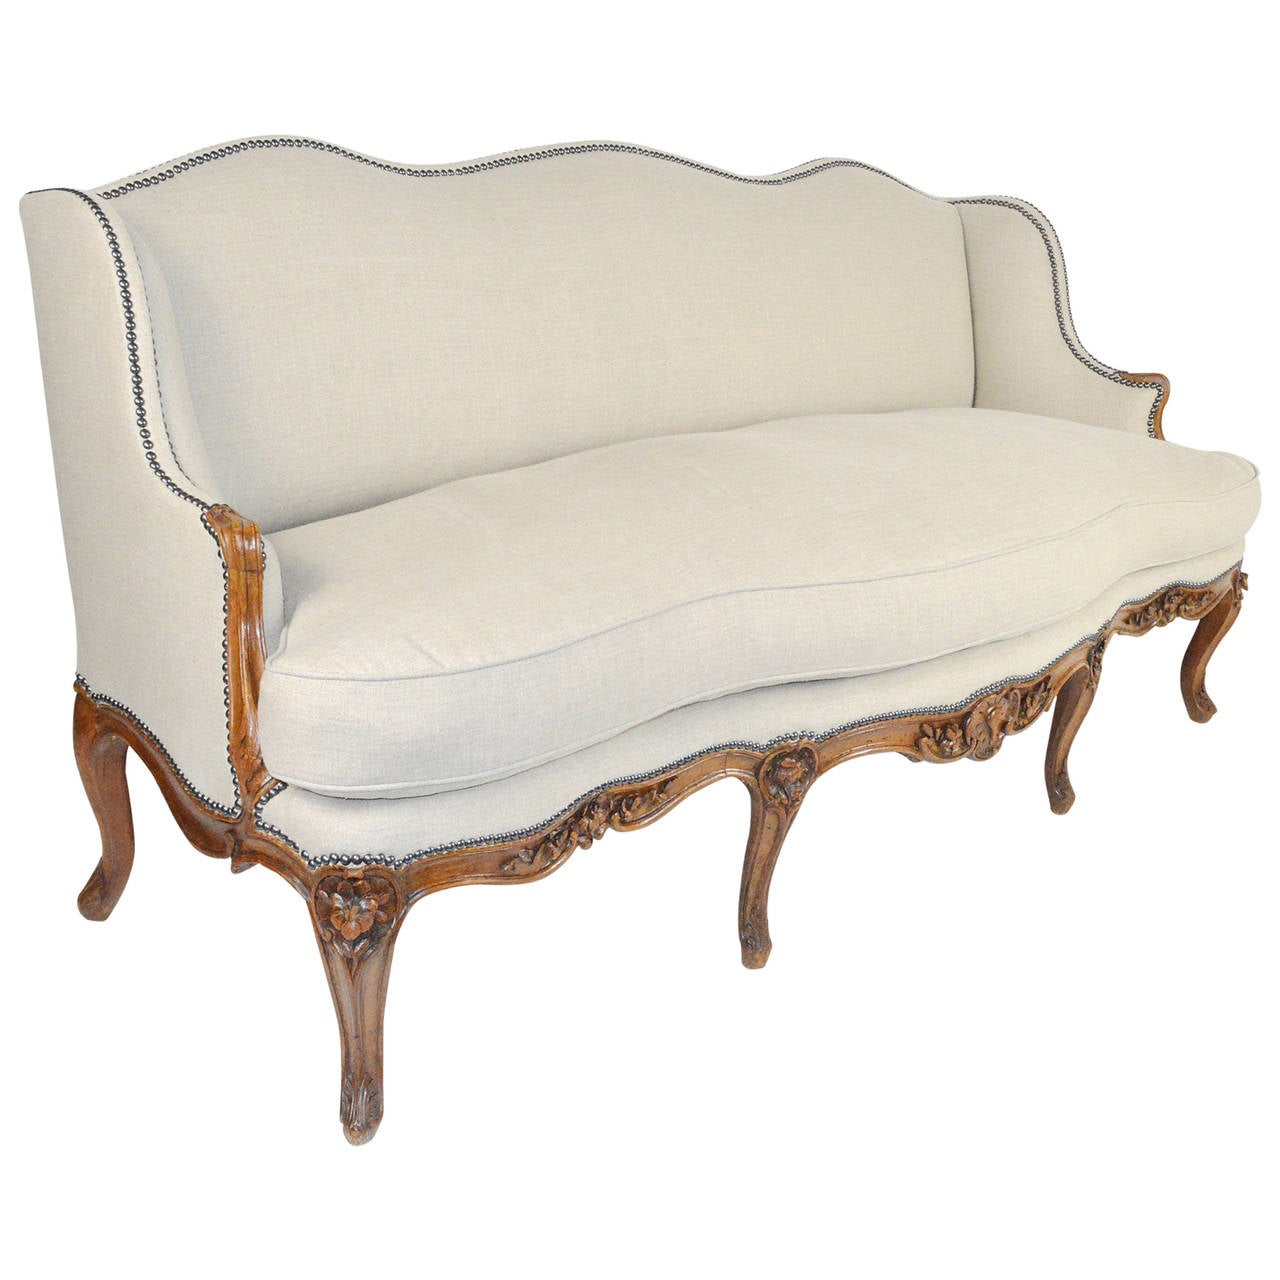 french louis xv style serpentine sofa canape at 1stdibs